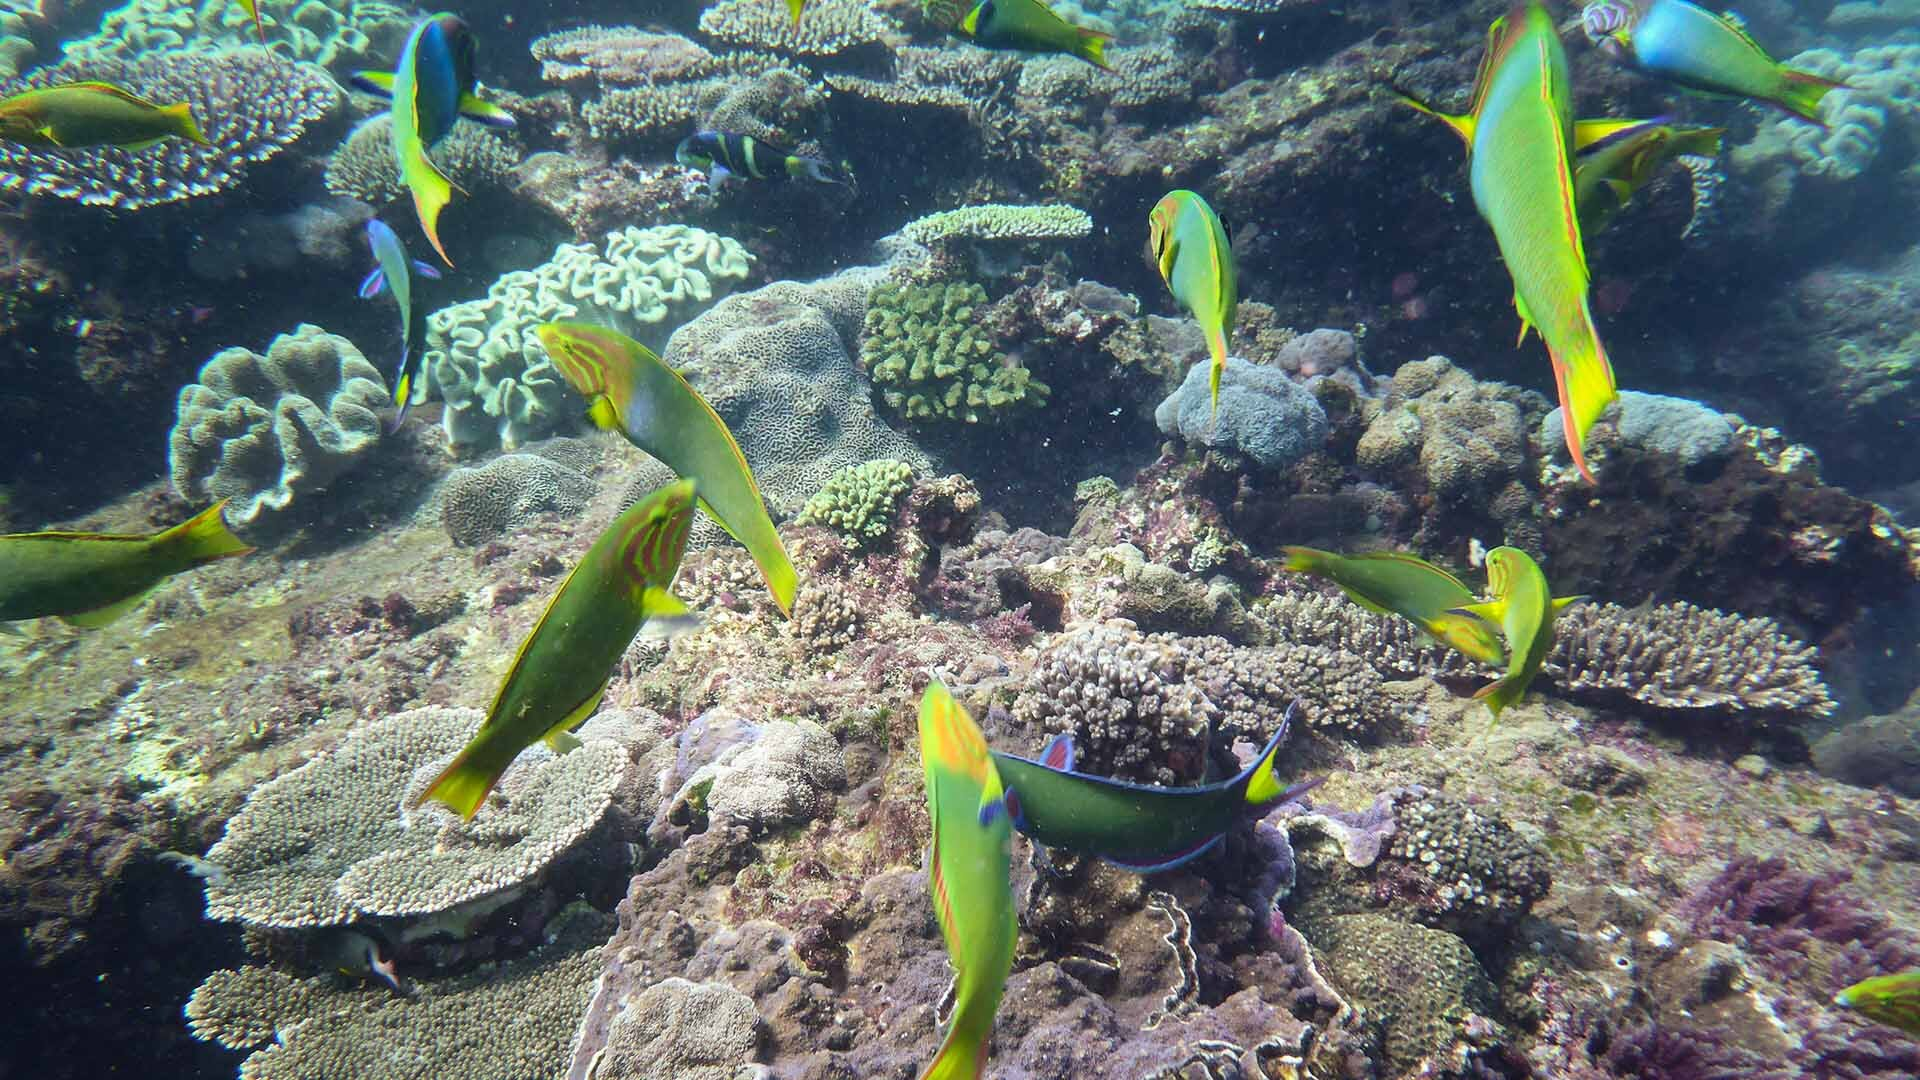 Moon wrasse and corals during Flinders Reef Ecological Assessment, © copyright, Cedric van den Berg, UniDive, UQ PhD student volunteer